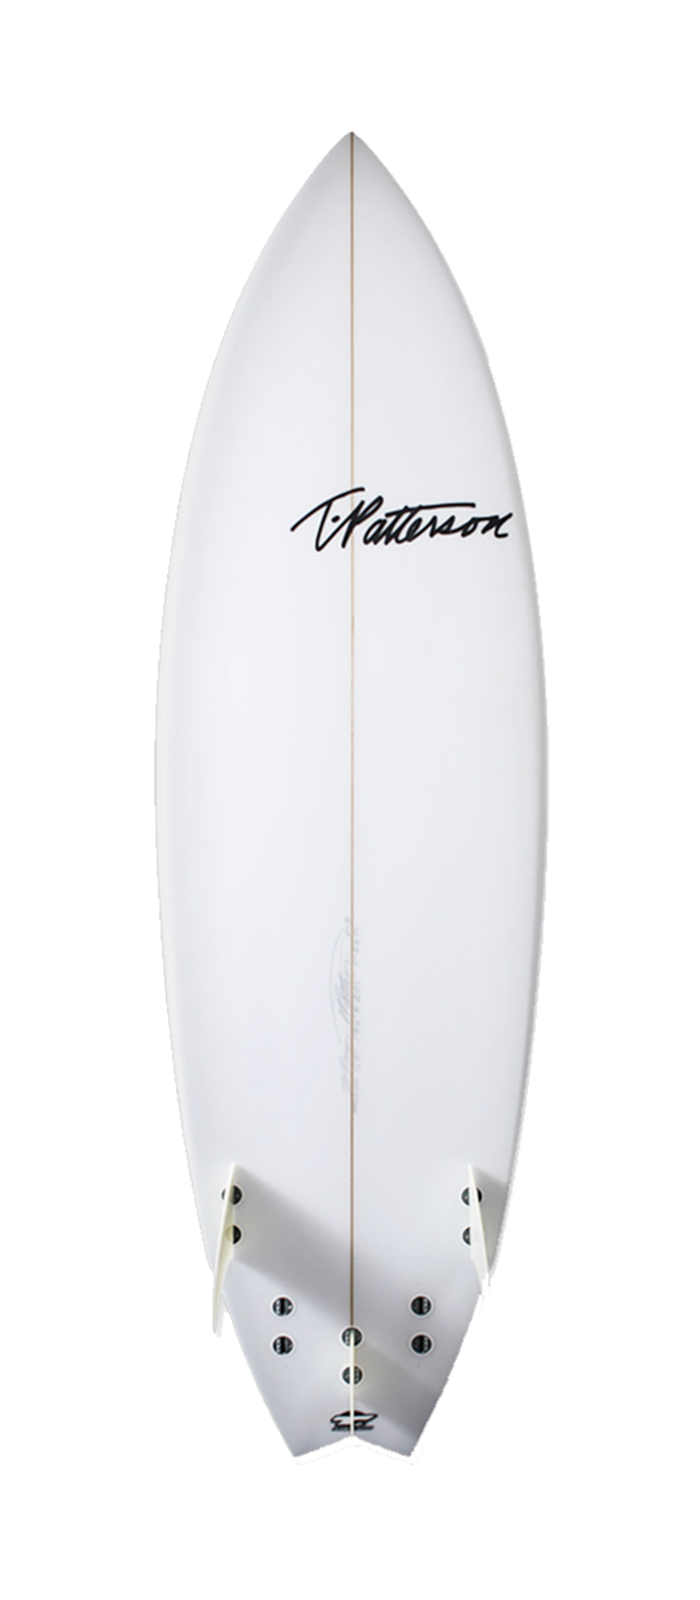 Twinner surfboard model bottom